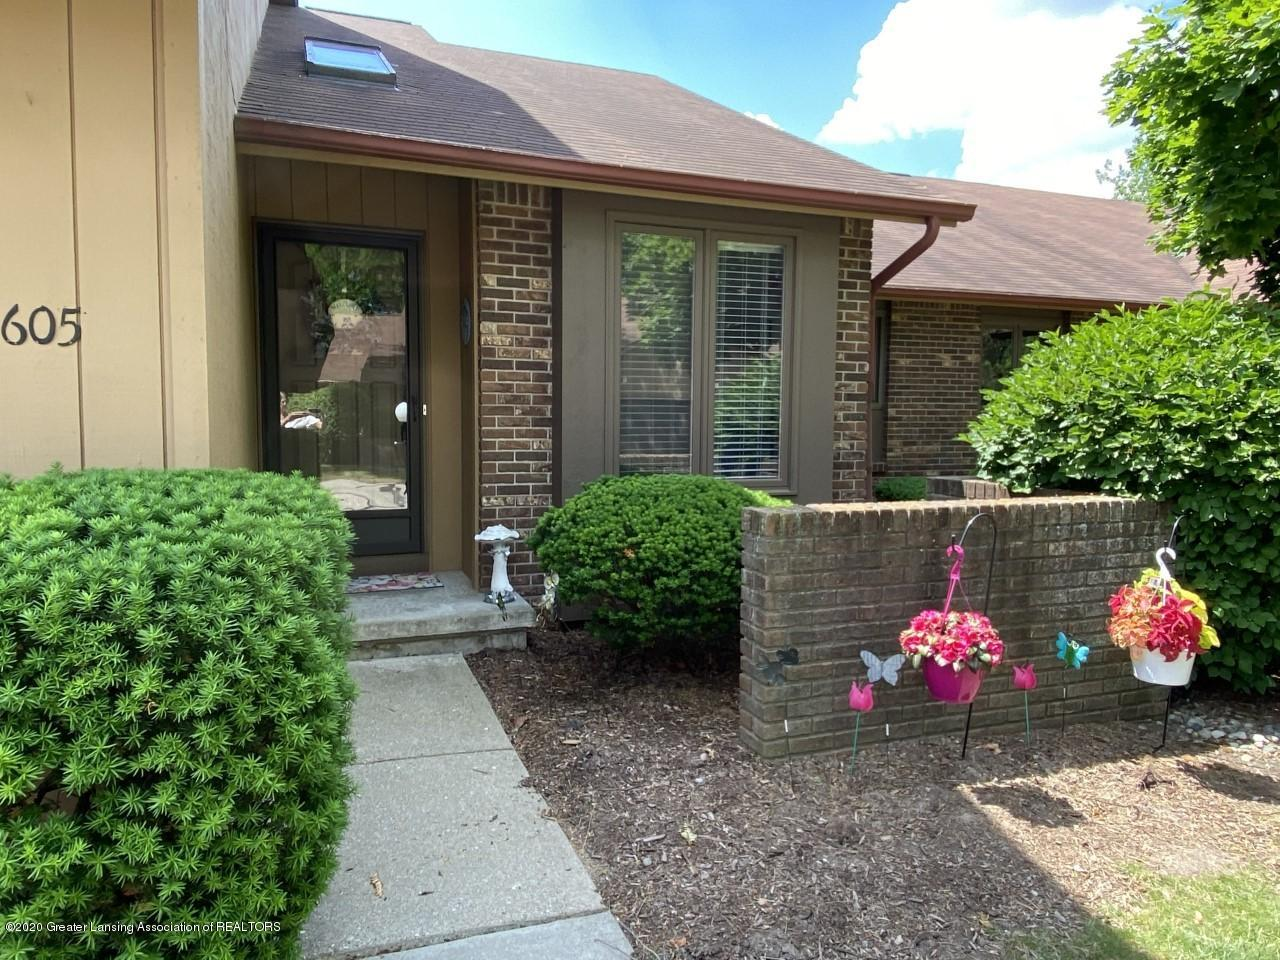 1605 Willow Creek Dr - Welcome! - 1